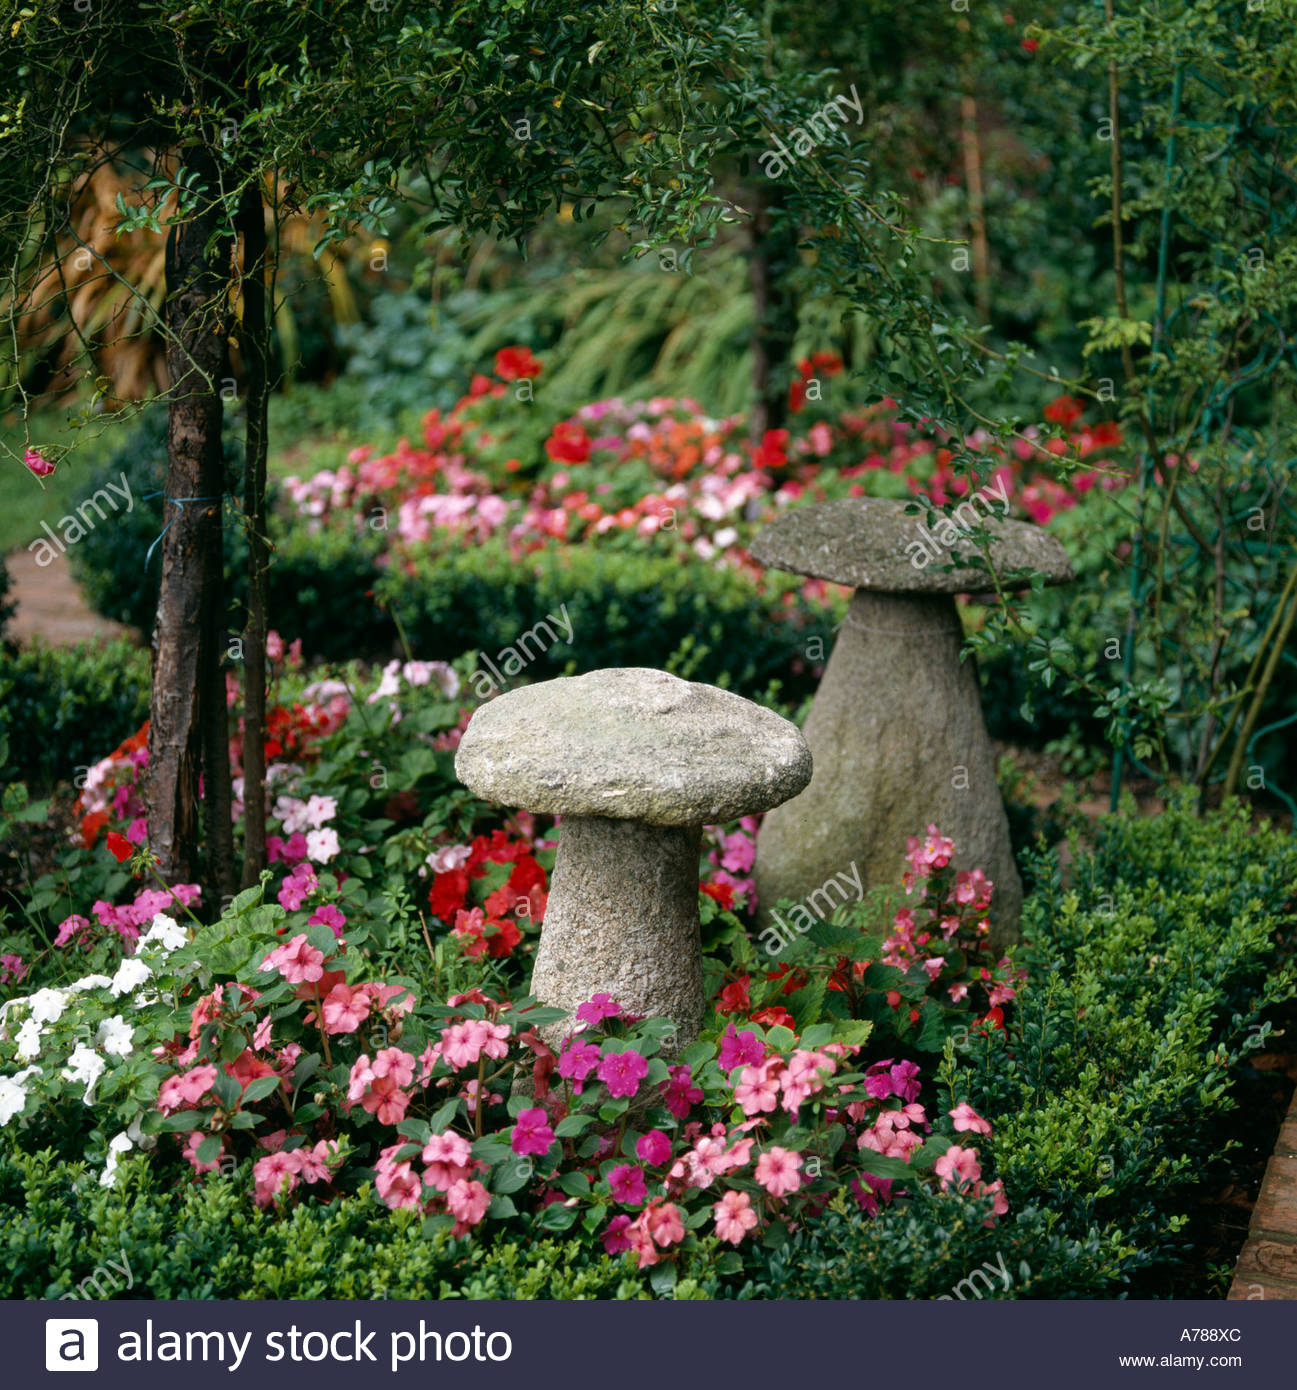 Decorative Stone Garden Toadstools Or Mushrooms In Colorful Garden